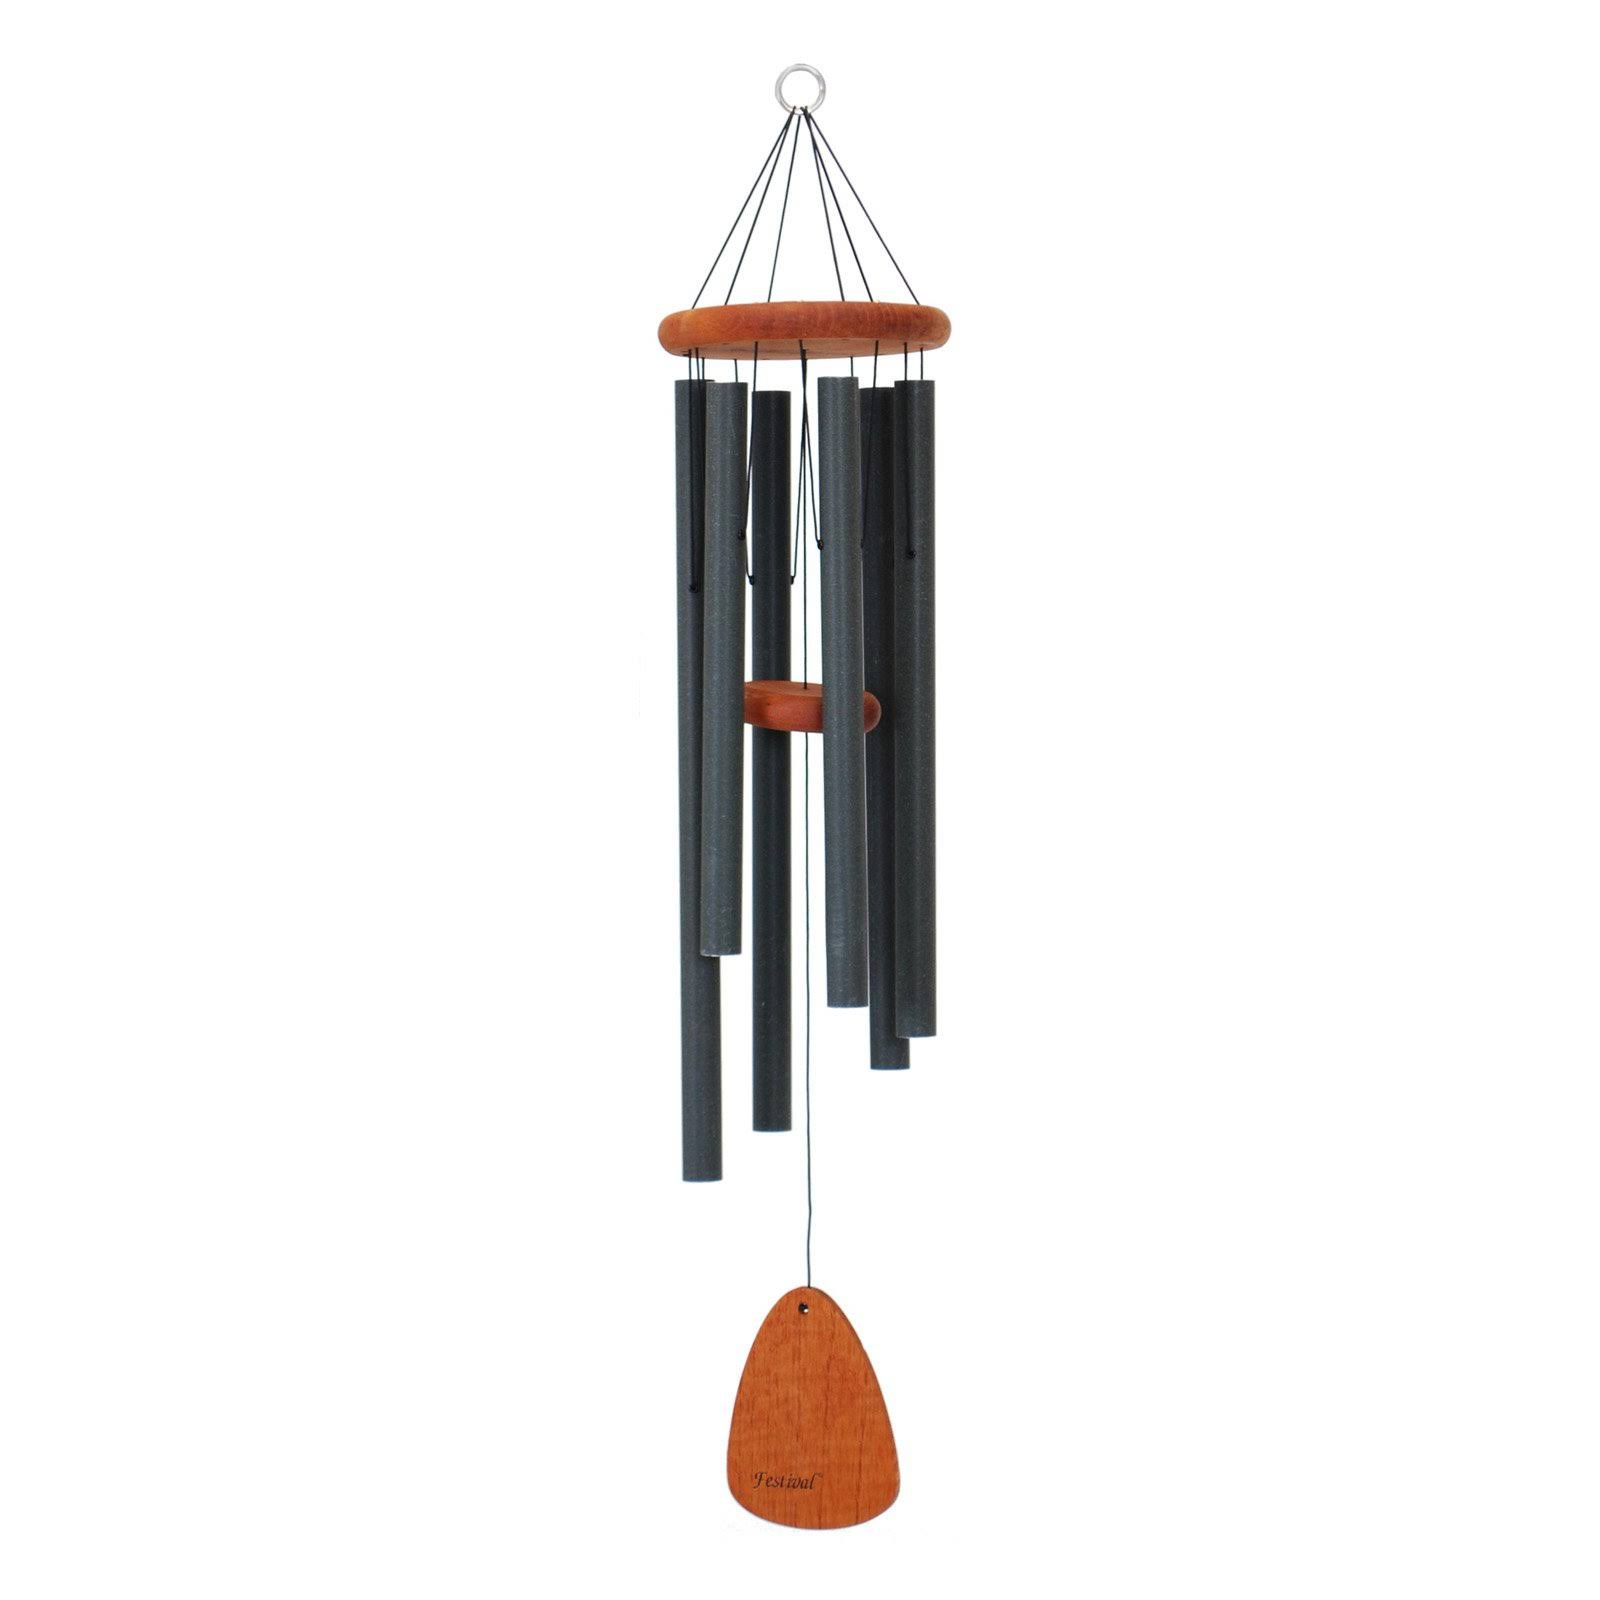 Festival 36 in. Wind Chime, Green